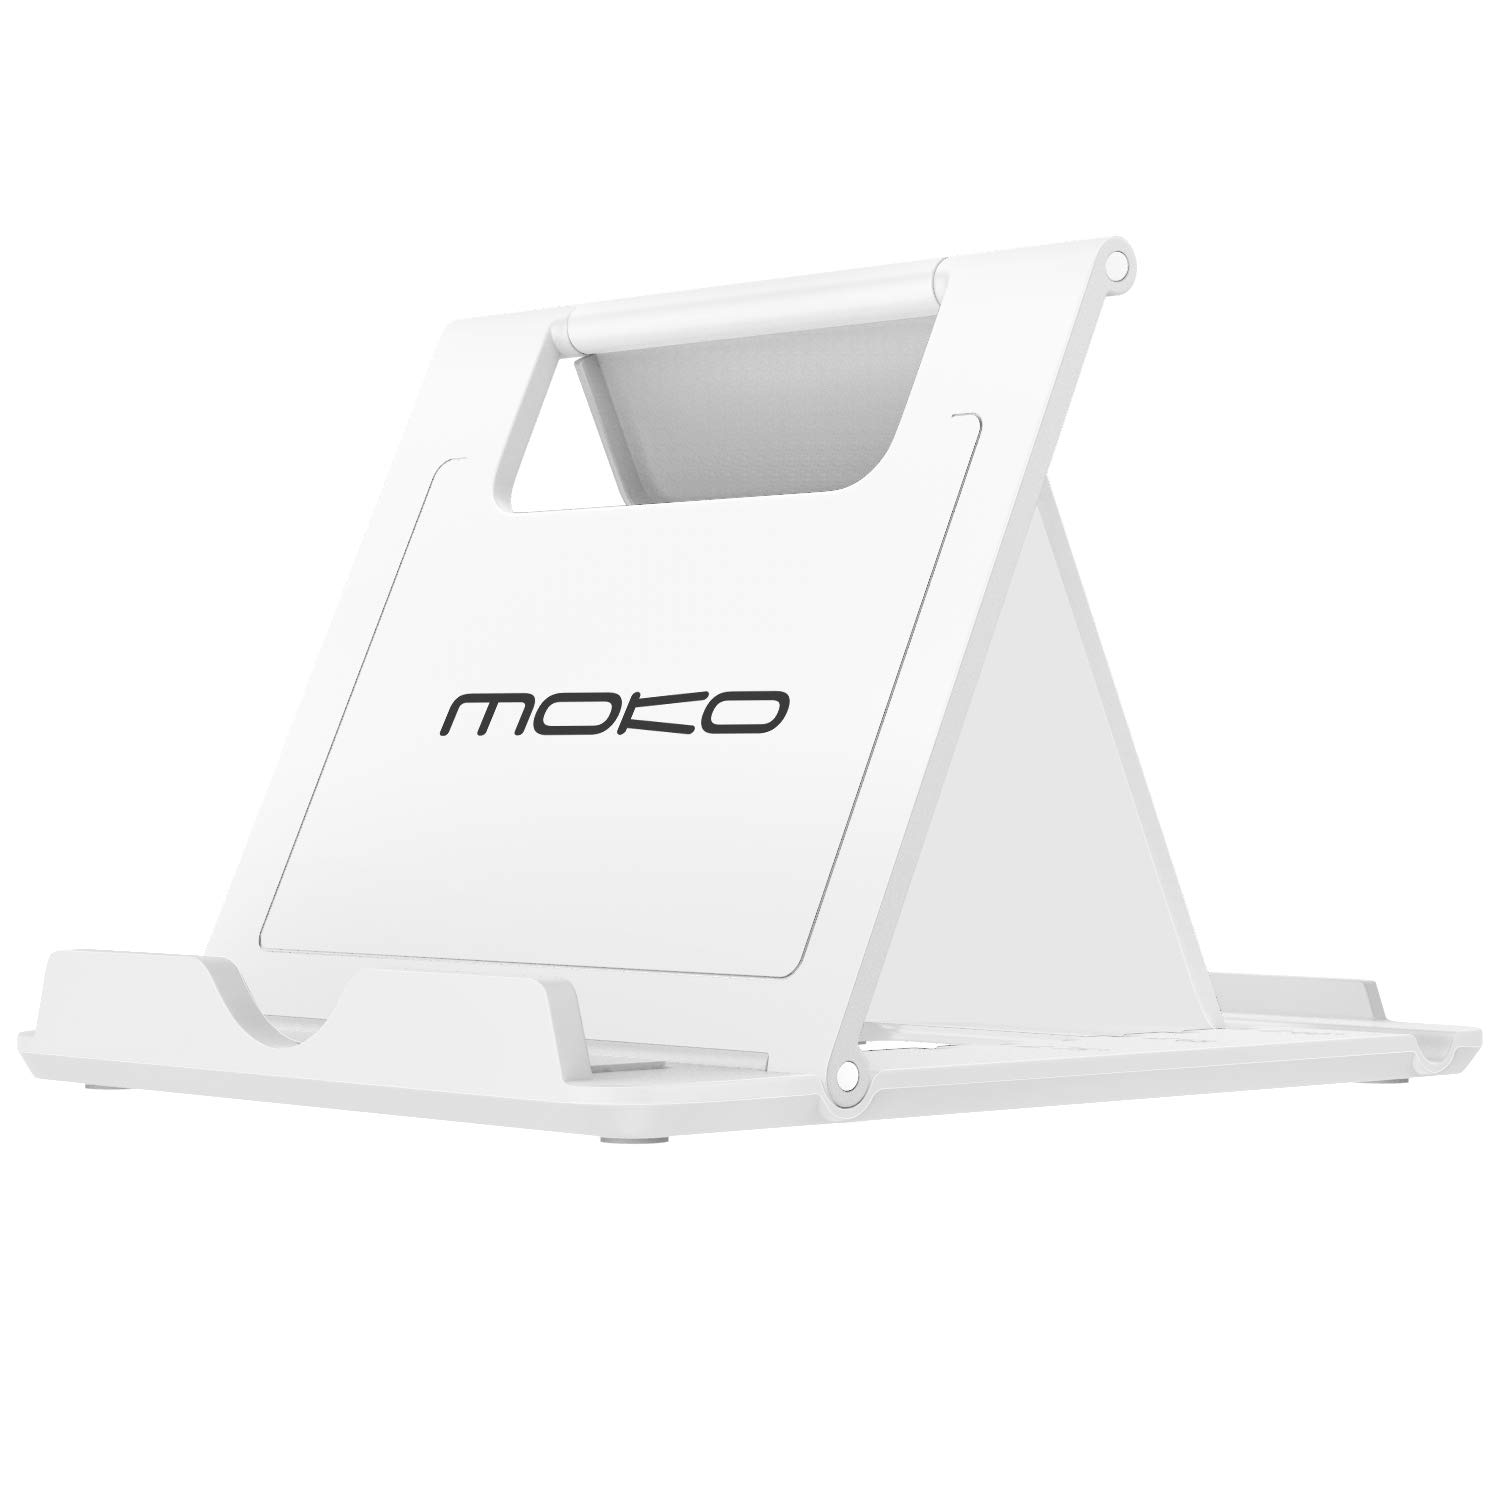 """MoKo Phone/Tablet Stand, Foldable Desktop Holder Fit with iPhone 11 Pro Max/11 Pro/11, iPhone Xs/Xs Max/Xr/X, iPhone SE 2020, iPad Pro 11 2020/10.2/Air 3/Mini 5, Galaxy S20 6.2"""", White(Small Size)"""